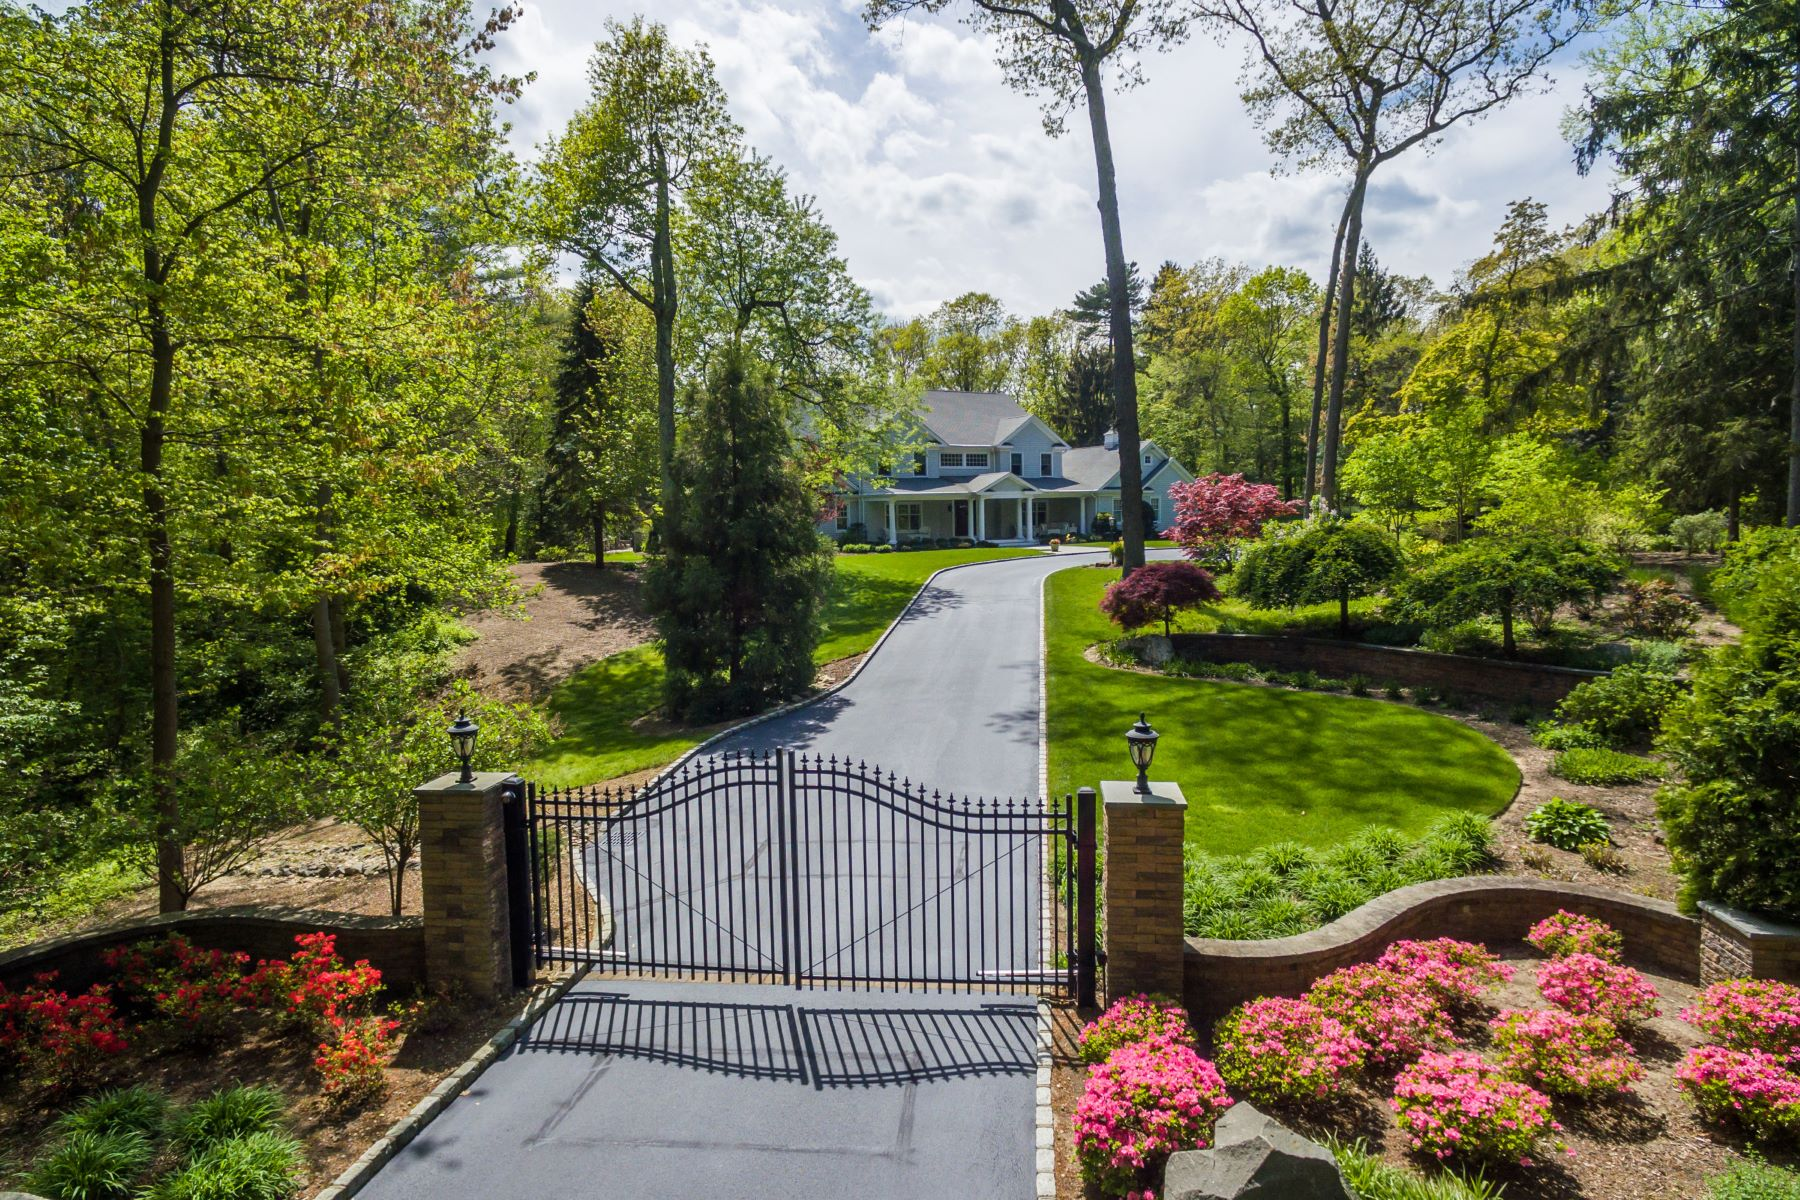 Single Family Home for Sale at Colonial 14 Woodlee Rd Cold Spring Harbor, New York, 11724 United States